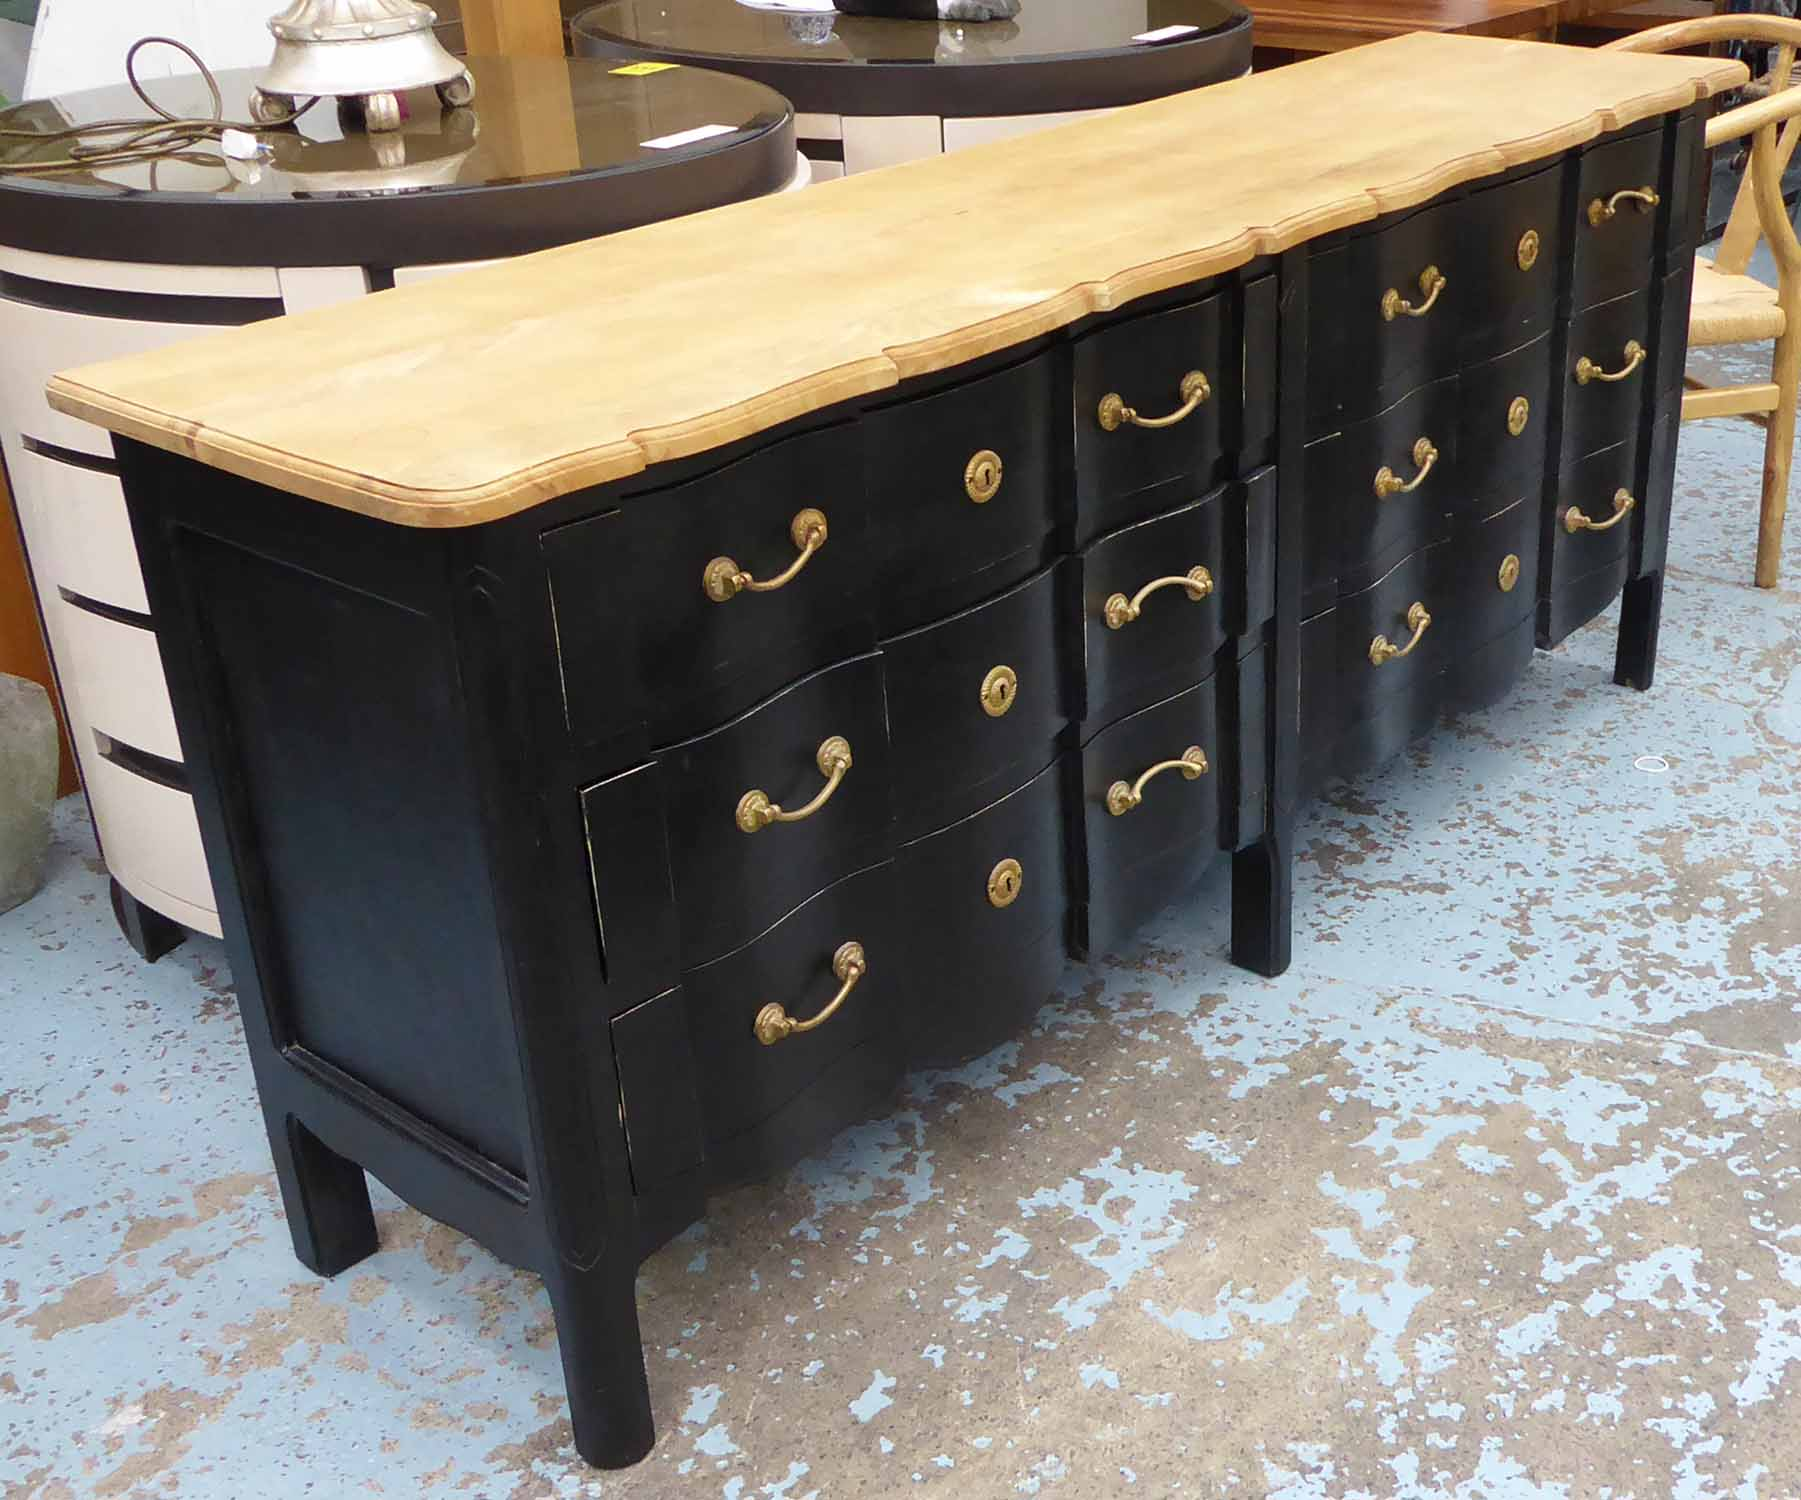 Lot 33 - BANK OF SIX DRAWERS, black with a wooden top, 200cm L x 50cm D x 88cm H.